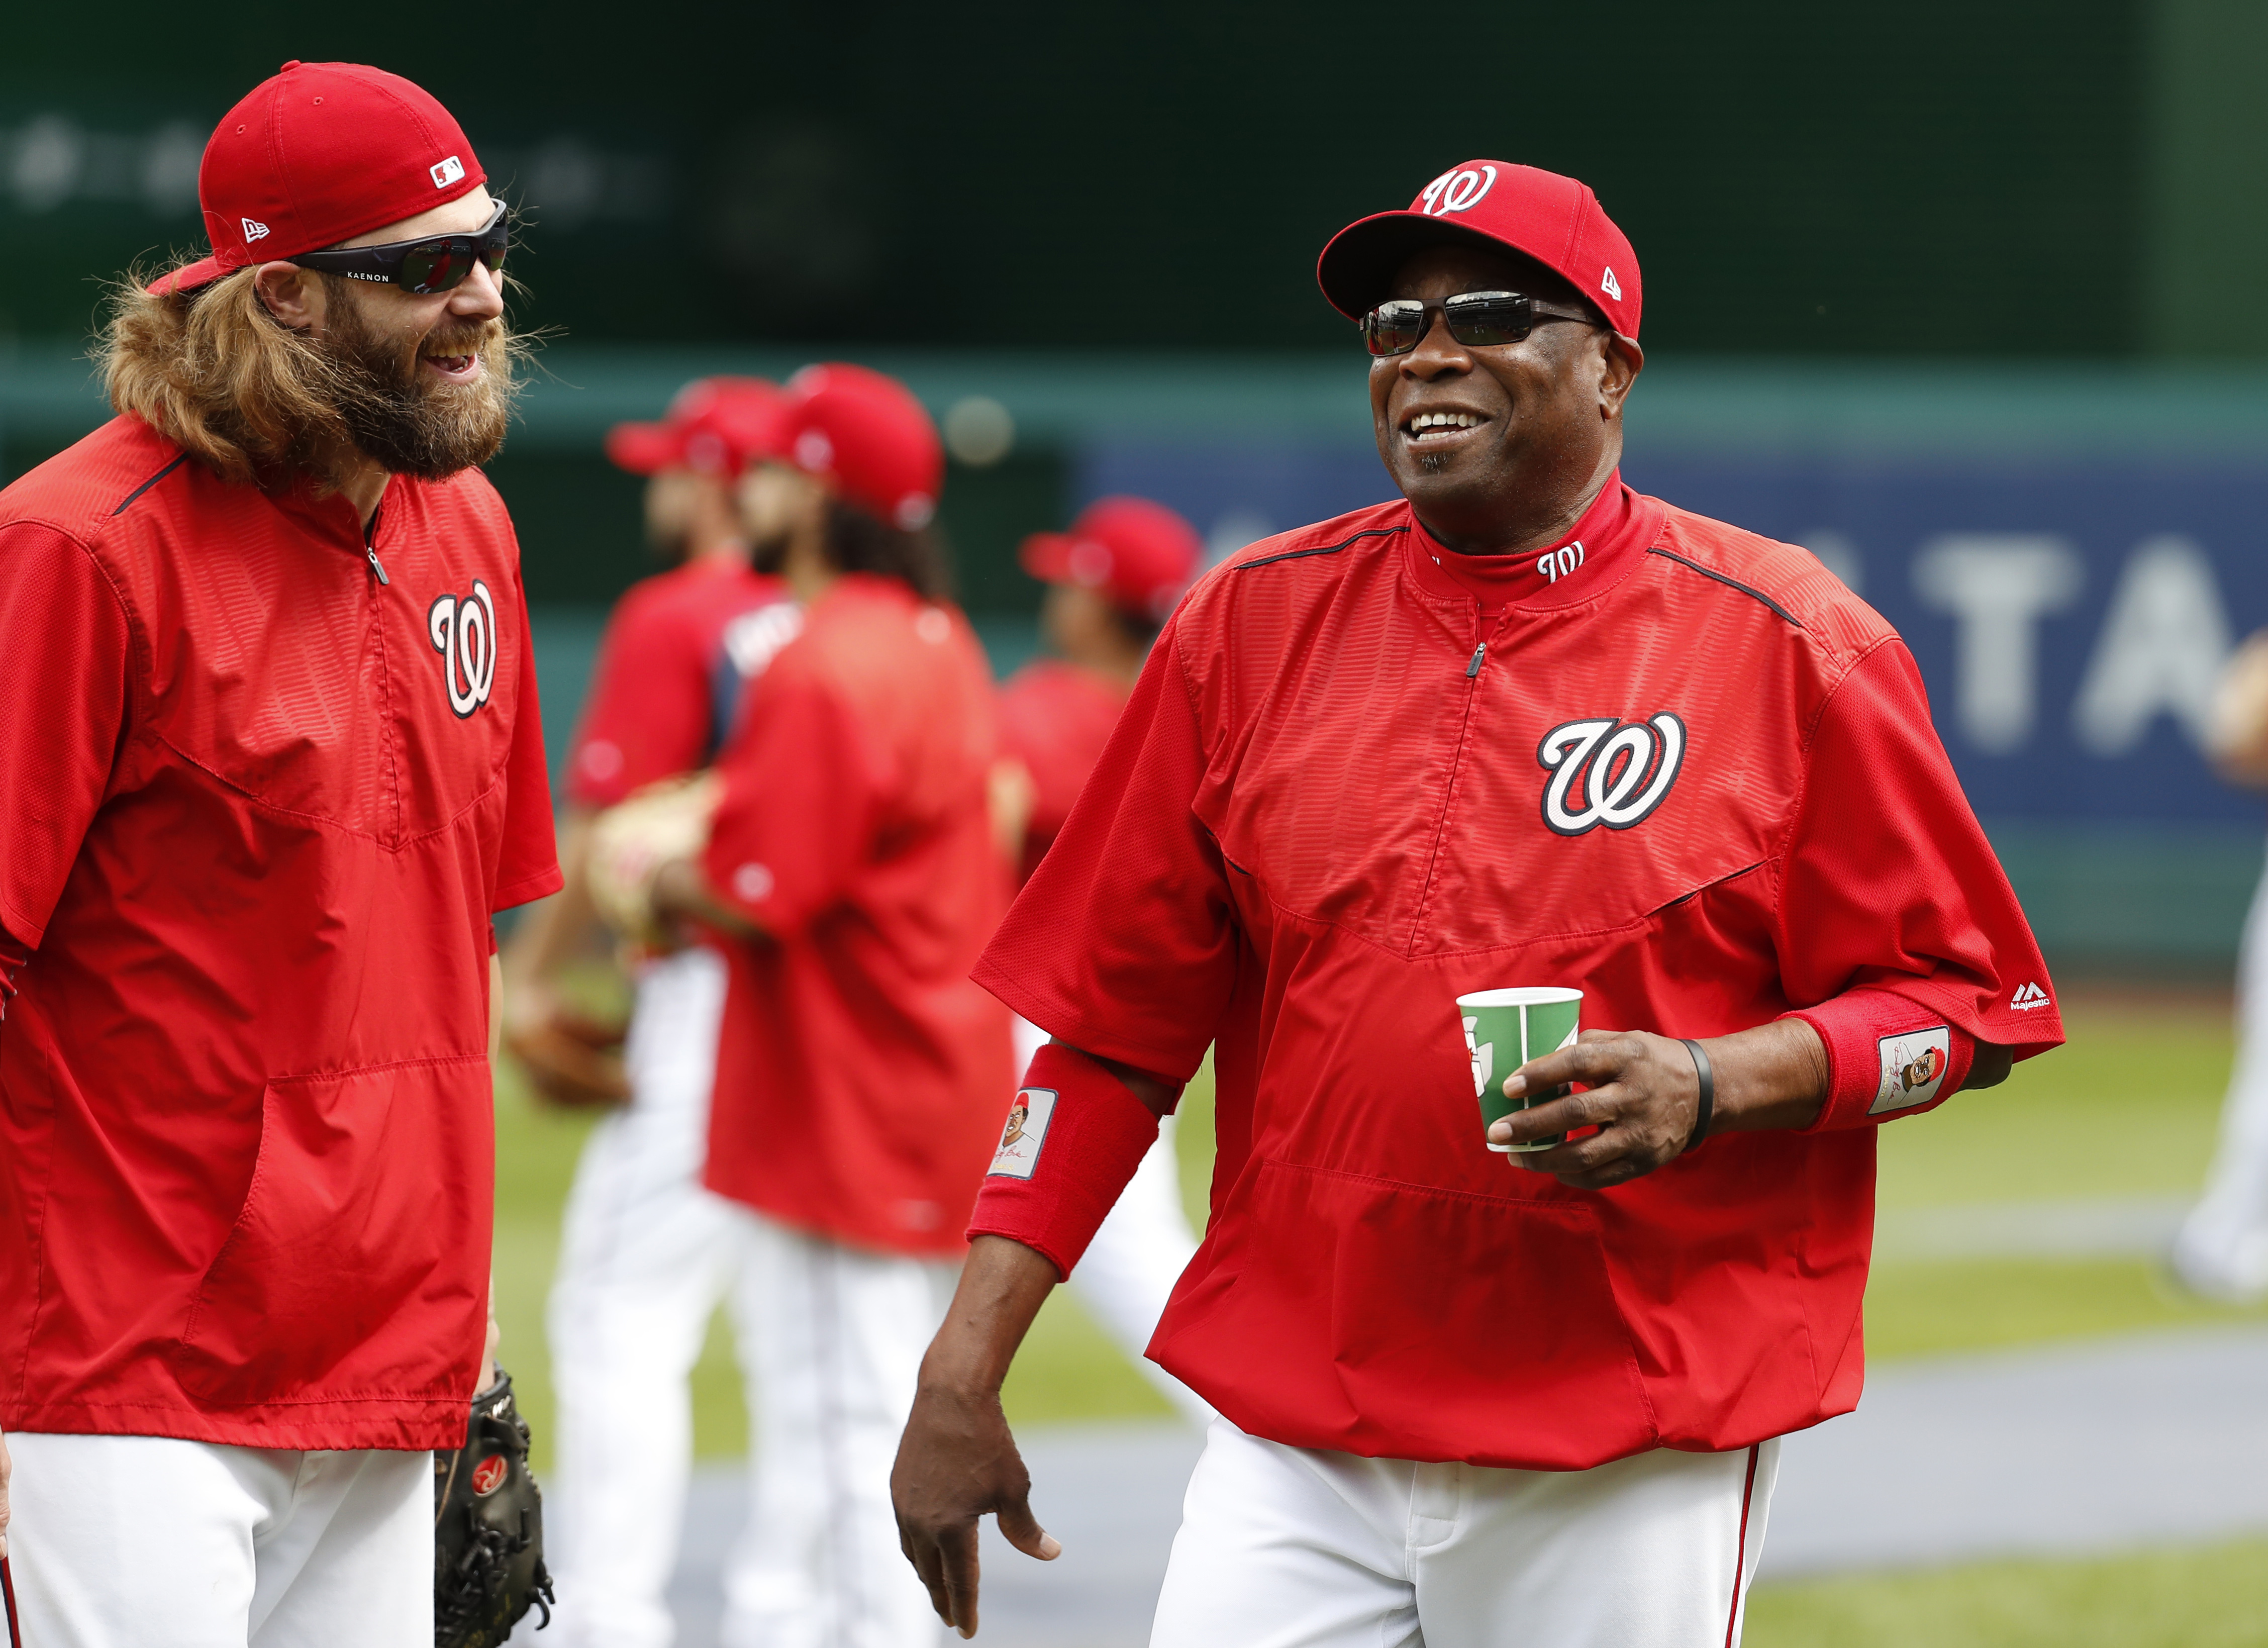 Washington Nationals left fielder Jayson Werth, left, and manager Dusty Baker share a laugh during baseball batting practice at Nationals Park, Tuesday, Oct. 4, 2016, in Washington. The Nationals host the Los Angeles Dodgers in Game 1 of the National Leag